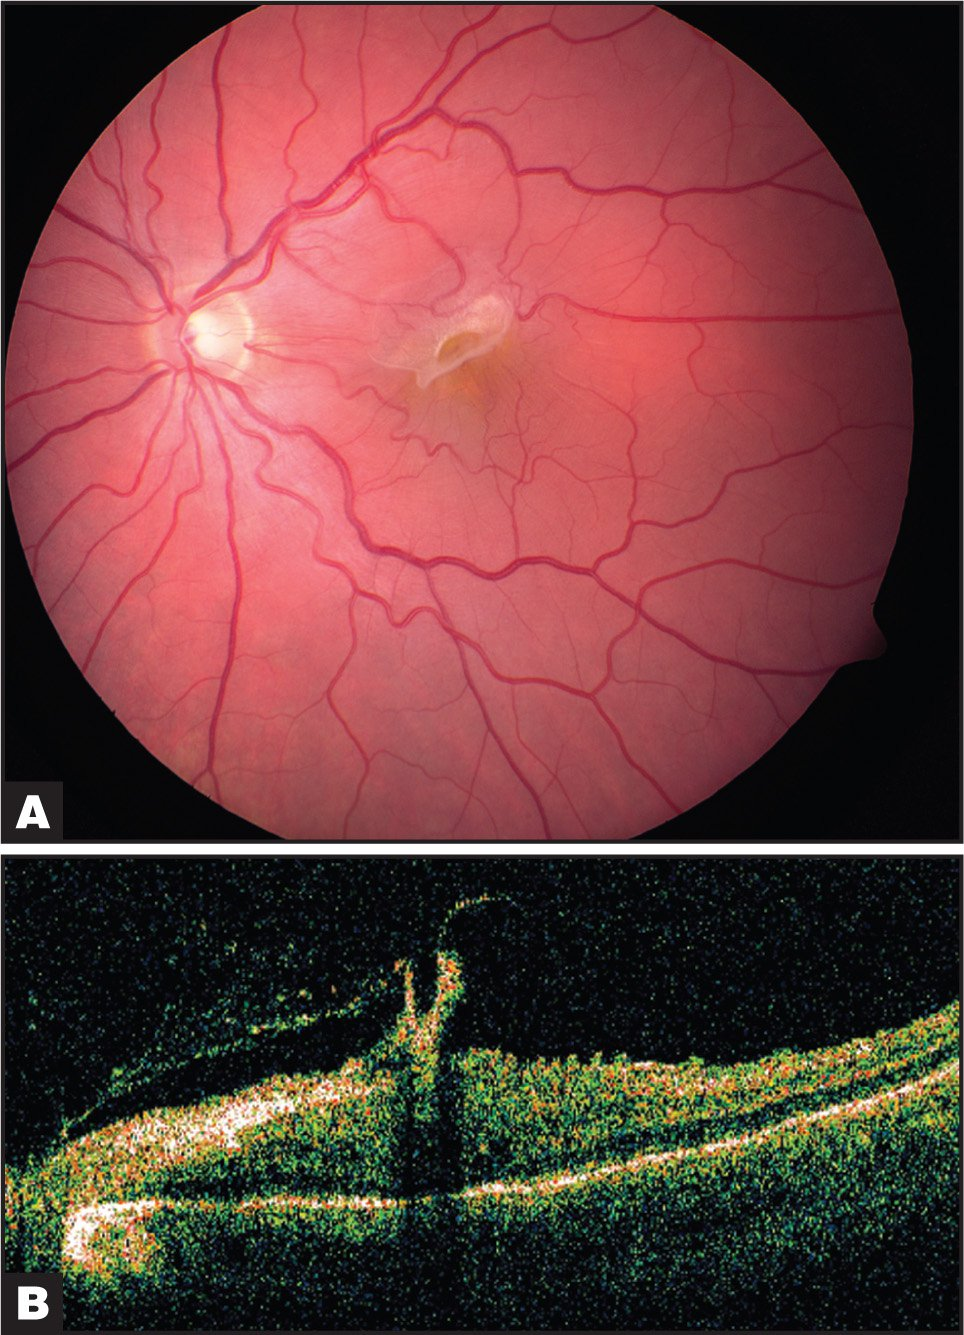 (A) Color Fundus Photograph of the Left Eye of a 15-Year-Old Boy 1 Month Following Pars Plana Vitrectomy Showing Residual Vitreous Cortex and the Posterior Face of the Bursa Macularis. Vitreous Is Attached to the Macula Superiorly and Detached from the Macula in the Inferotemporal Area. Visual Acuity at This Time Was 20/200. (B) Corresponding Horizontal 6-mm Optical Coherence Tomography Scan Showing Residual Vitreomacular Attachment and Macular Edema.